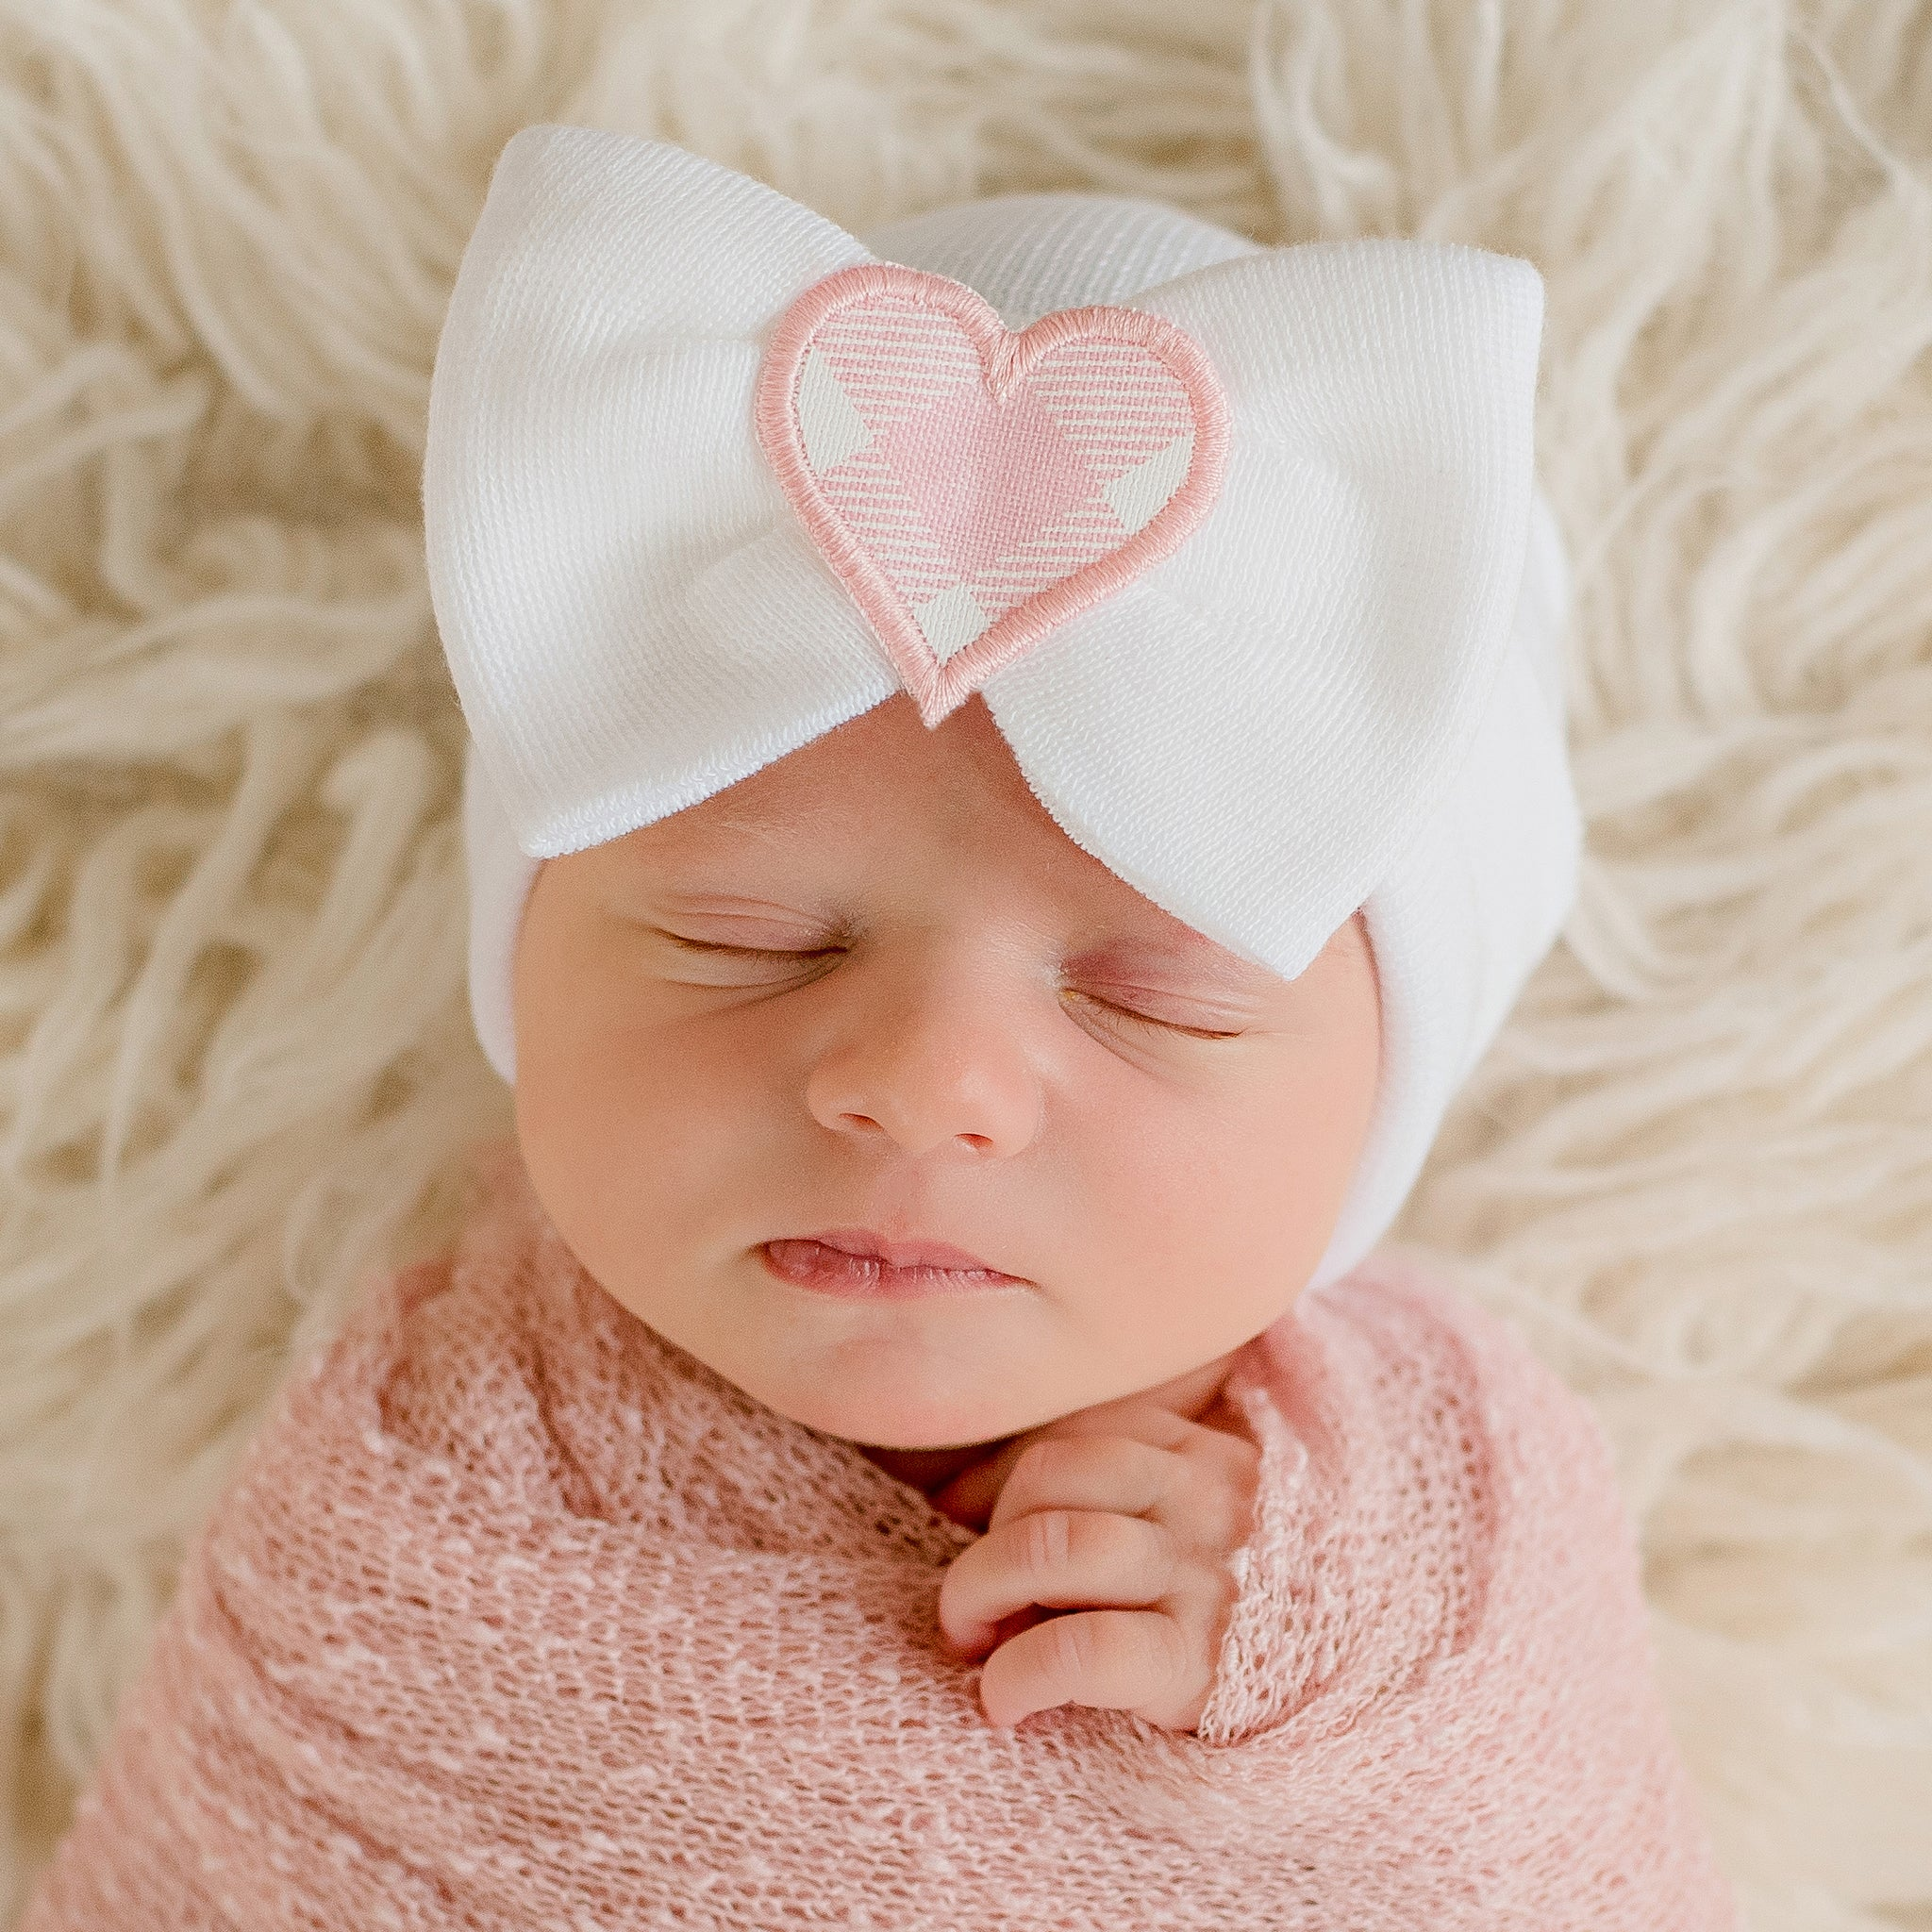 Haley Heart Newborn Girl Big Bow and Gingham Heart Patch Hospital Hat